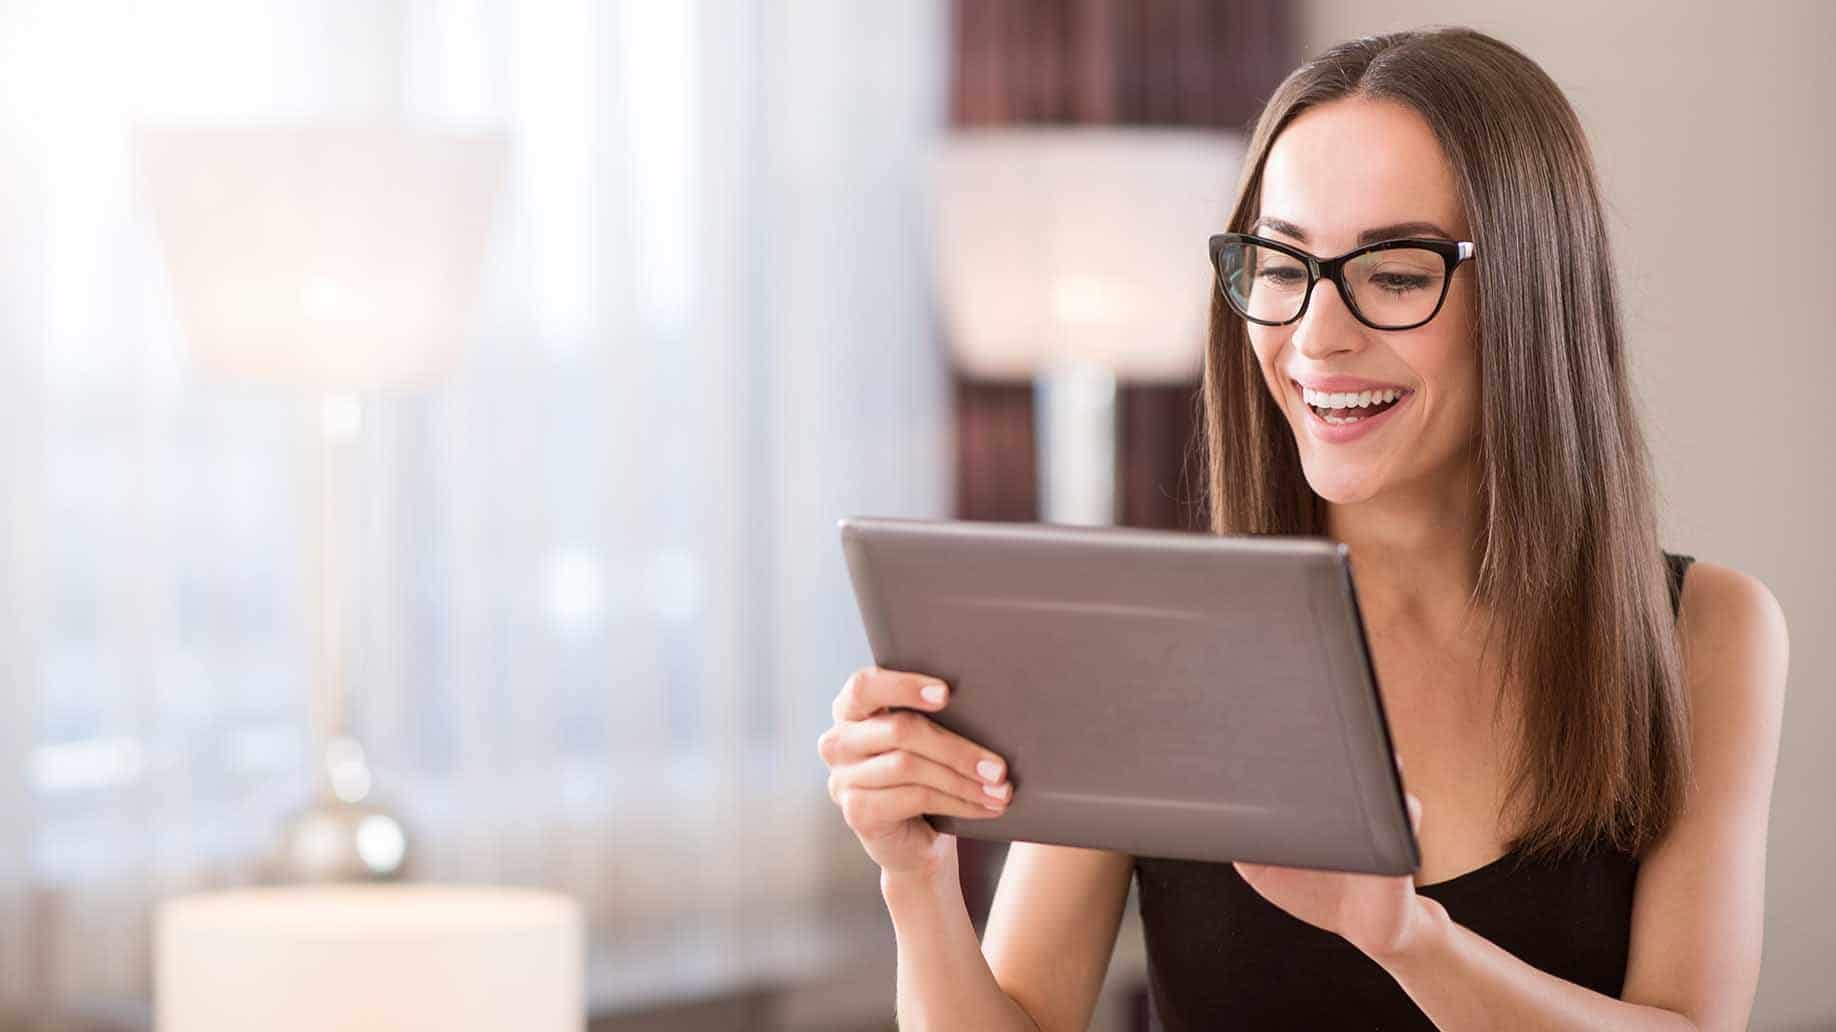 woman smiling holding tablet